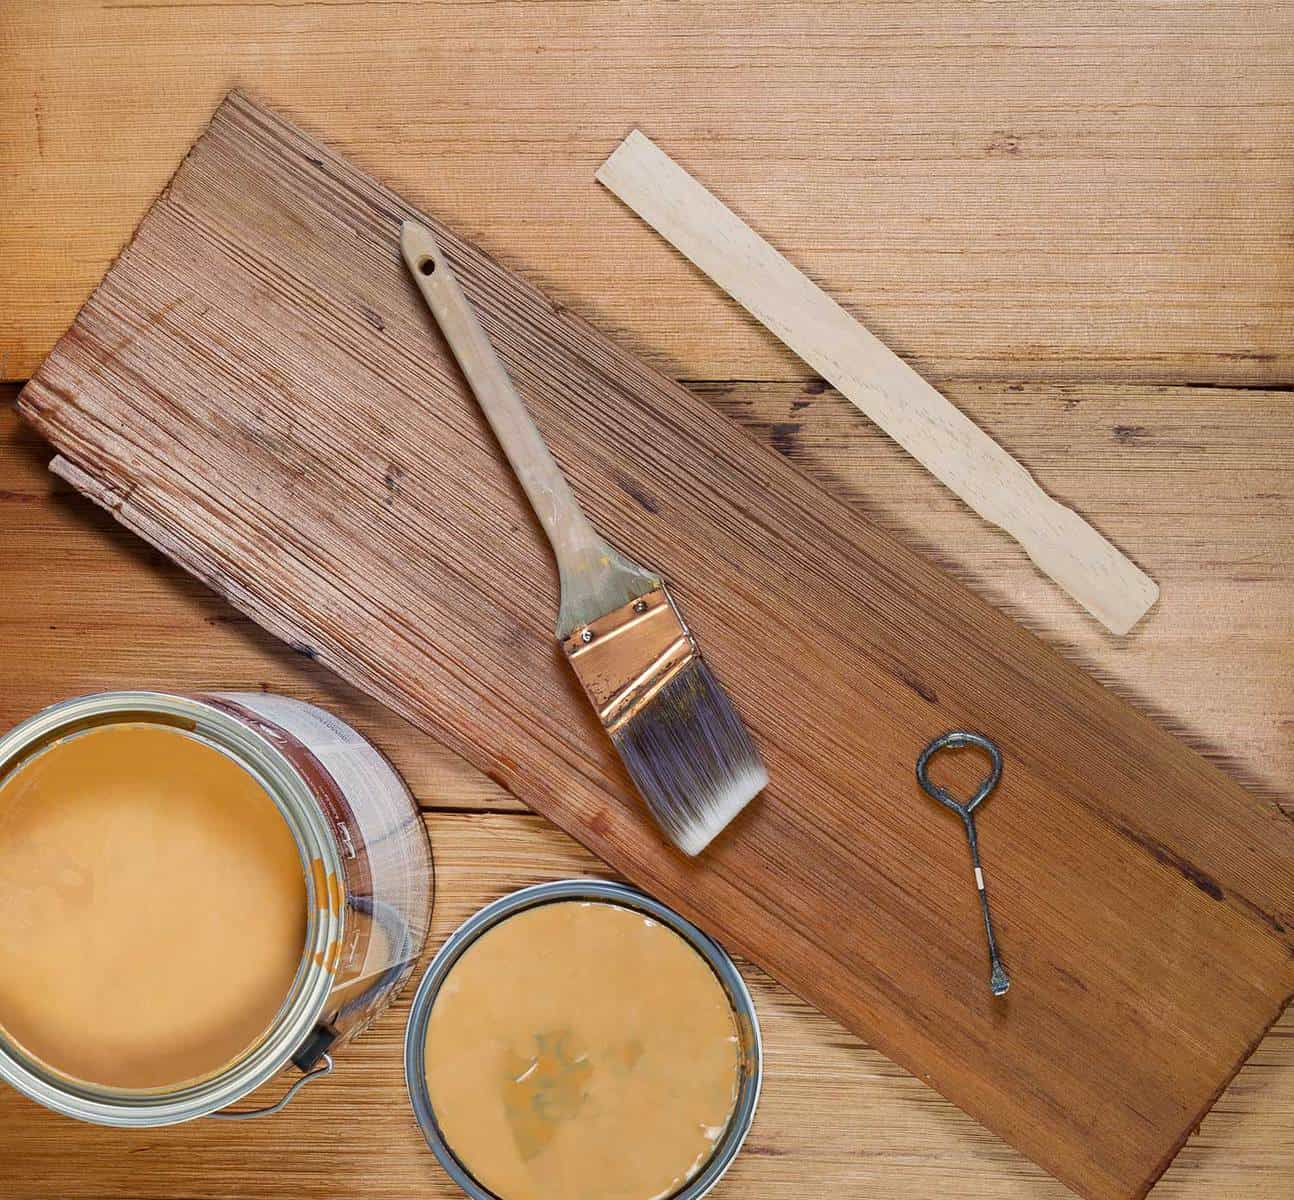 Basic tools for staining wood